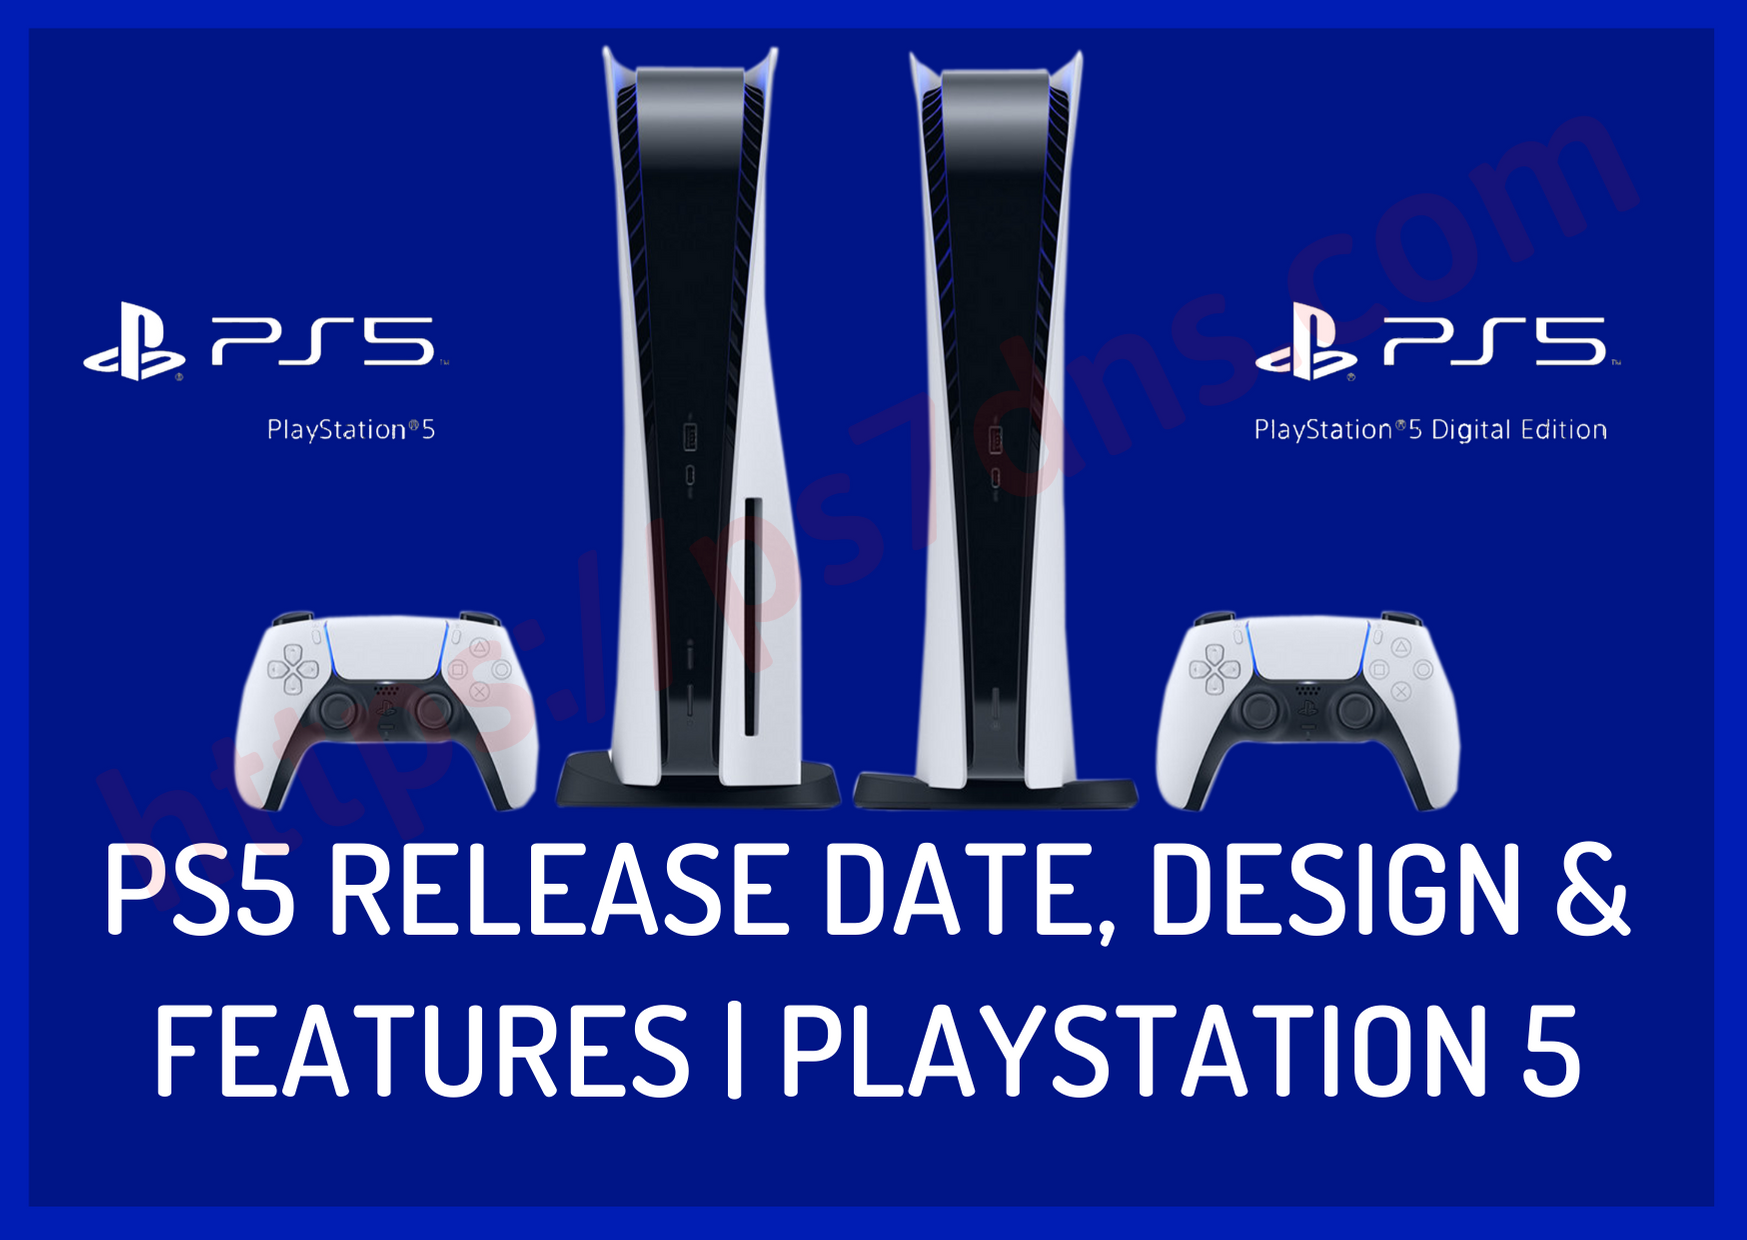 PS5 Release Date, Design & Features PlayStation 5